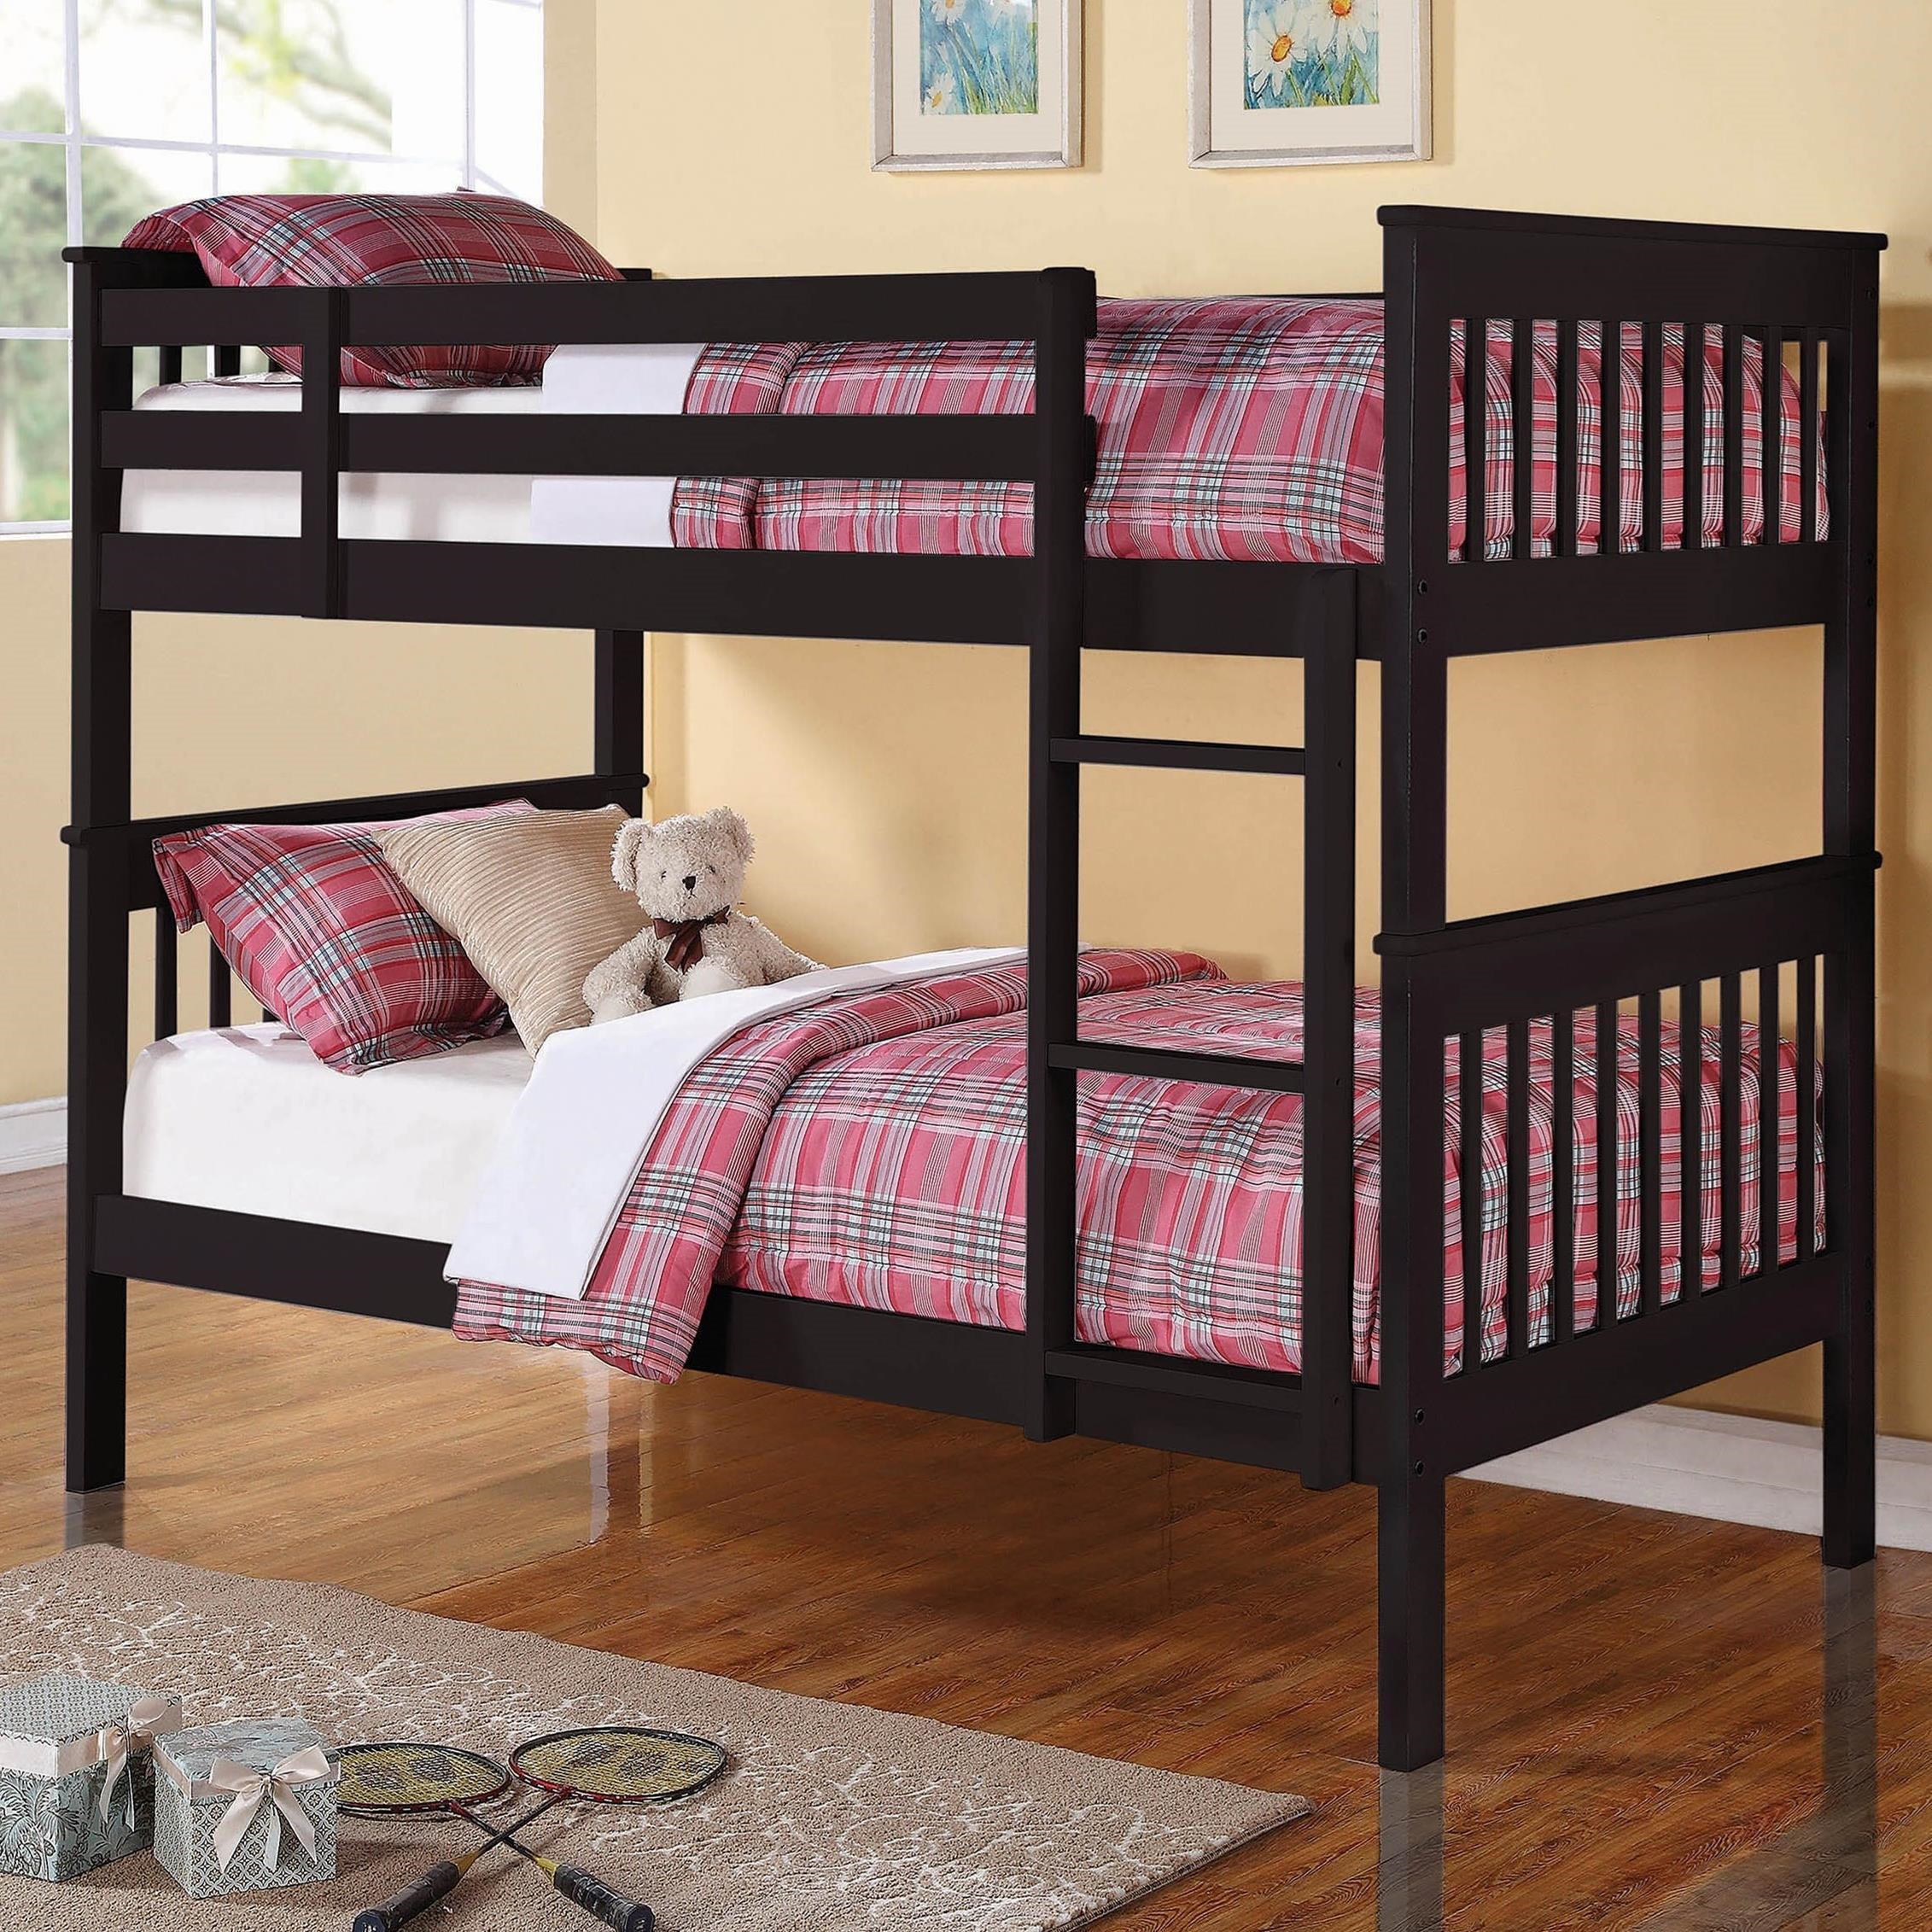 Bunks Chapman Twin/Twin Bunk Bed by Coaster at Northeast Factory Direct